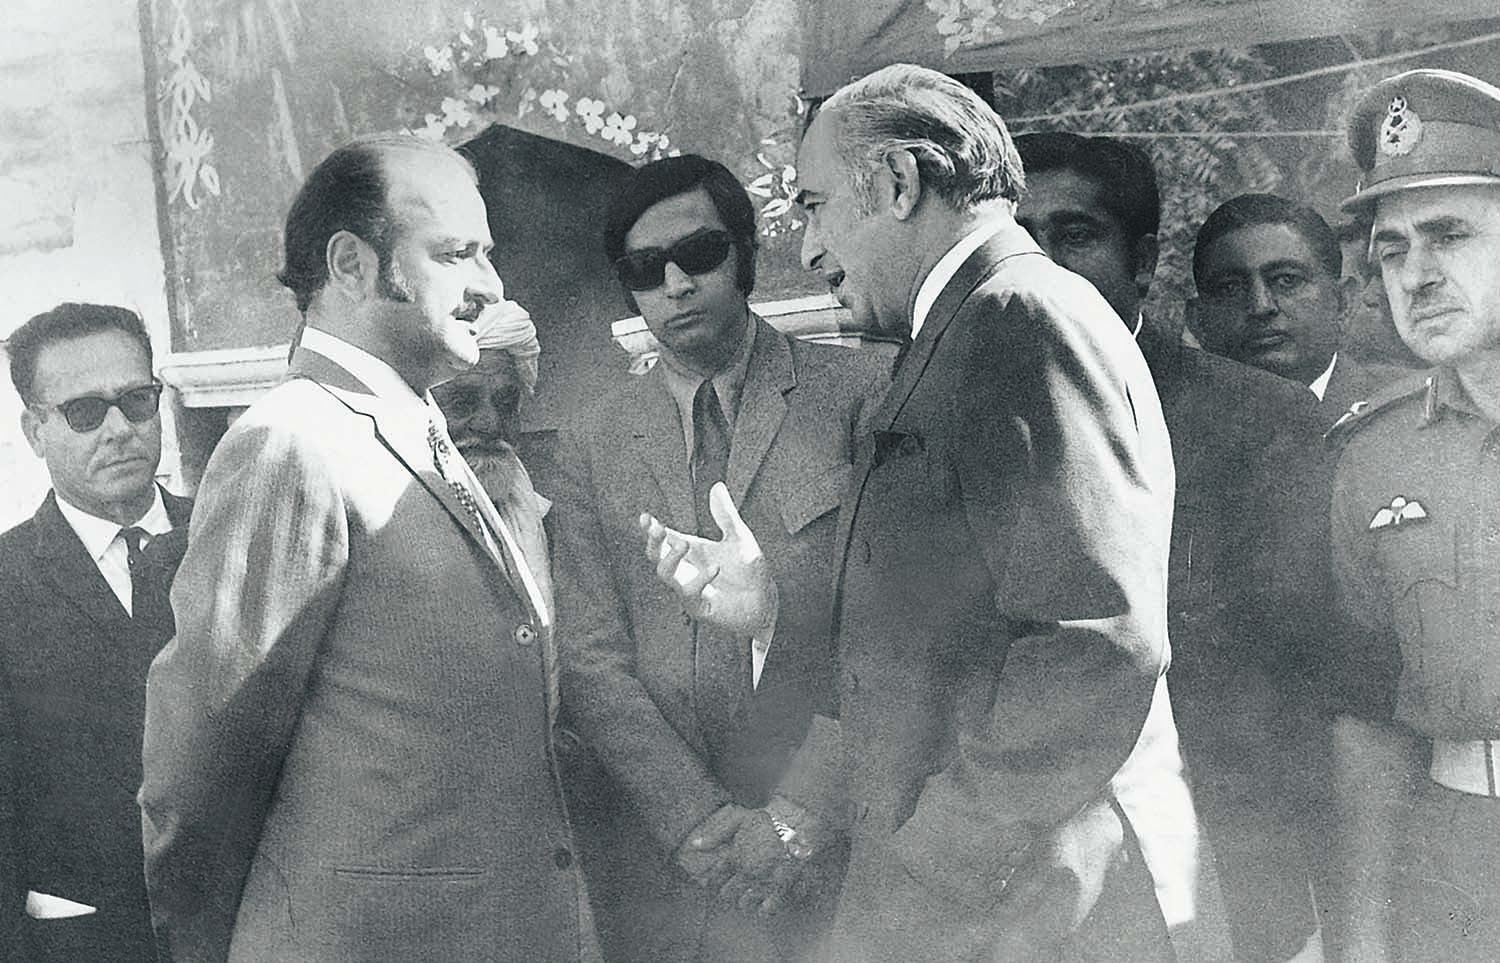 Zulfikar Ali Bhutto deep in discussion with Mumtaz Bhutto, the 'talented cousin' who ruled the province of Sindh till 1973, but remained a close aide of the Prime Minister till the very last. | Photo: Dawn / White Star Archives